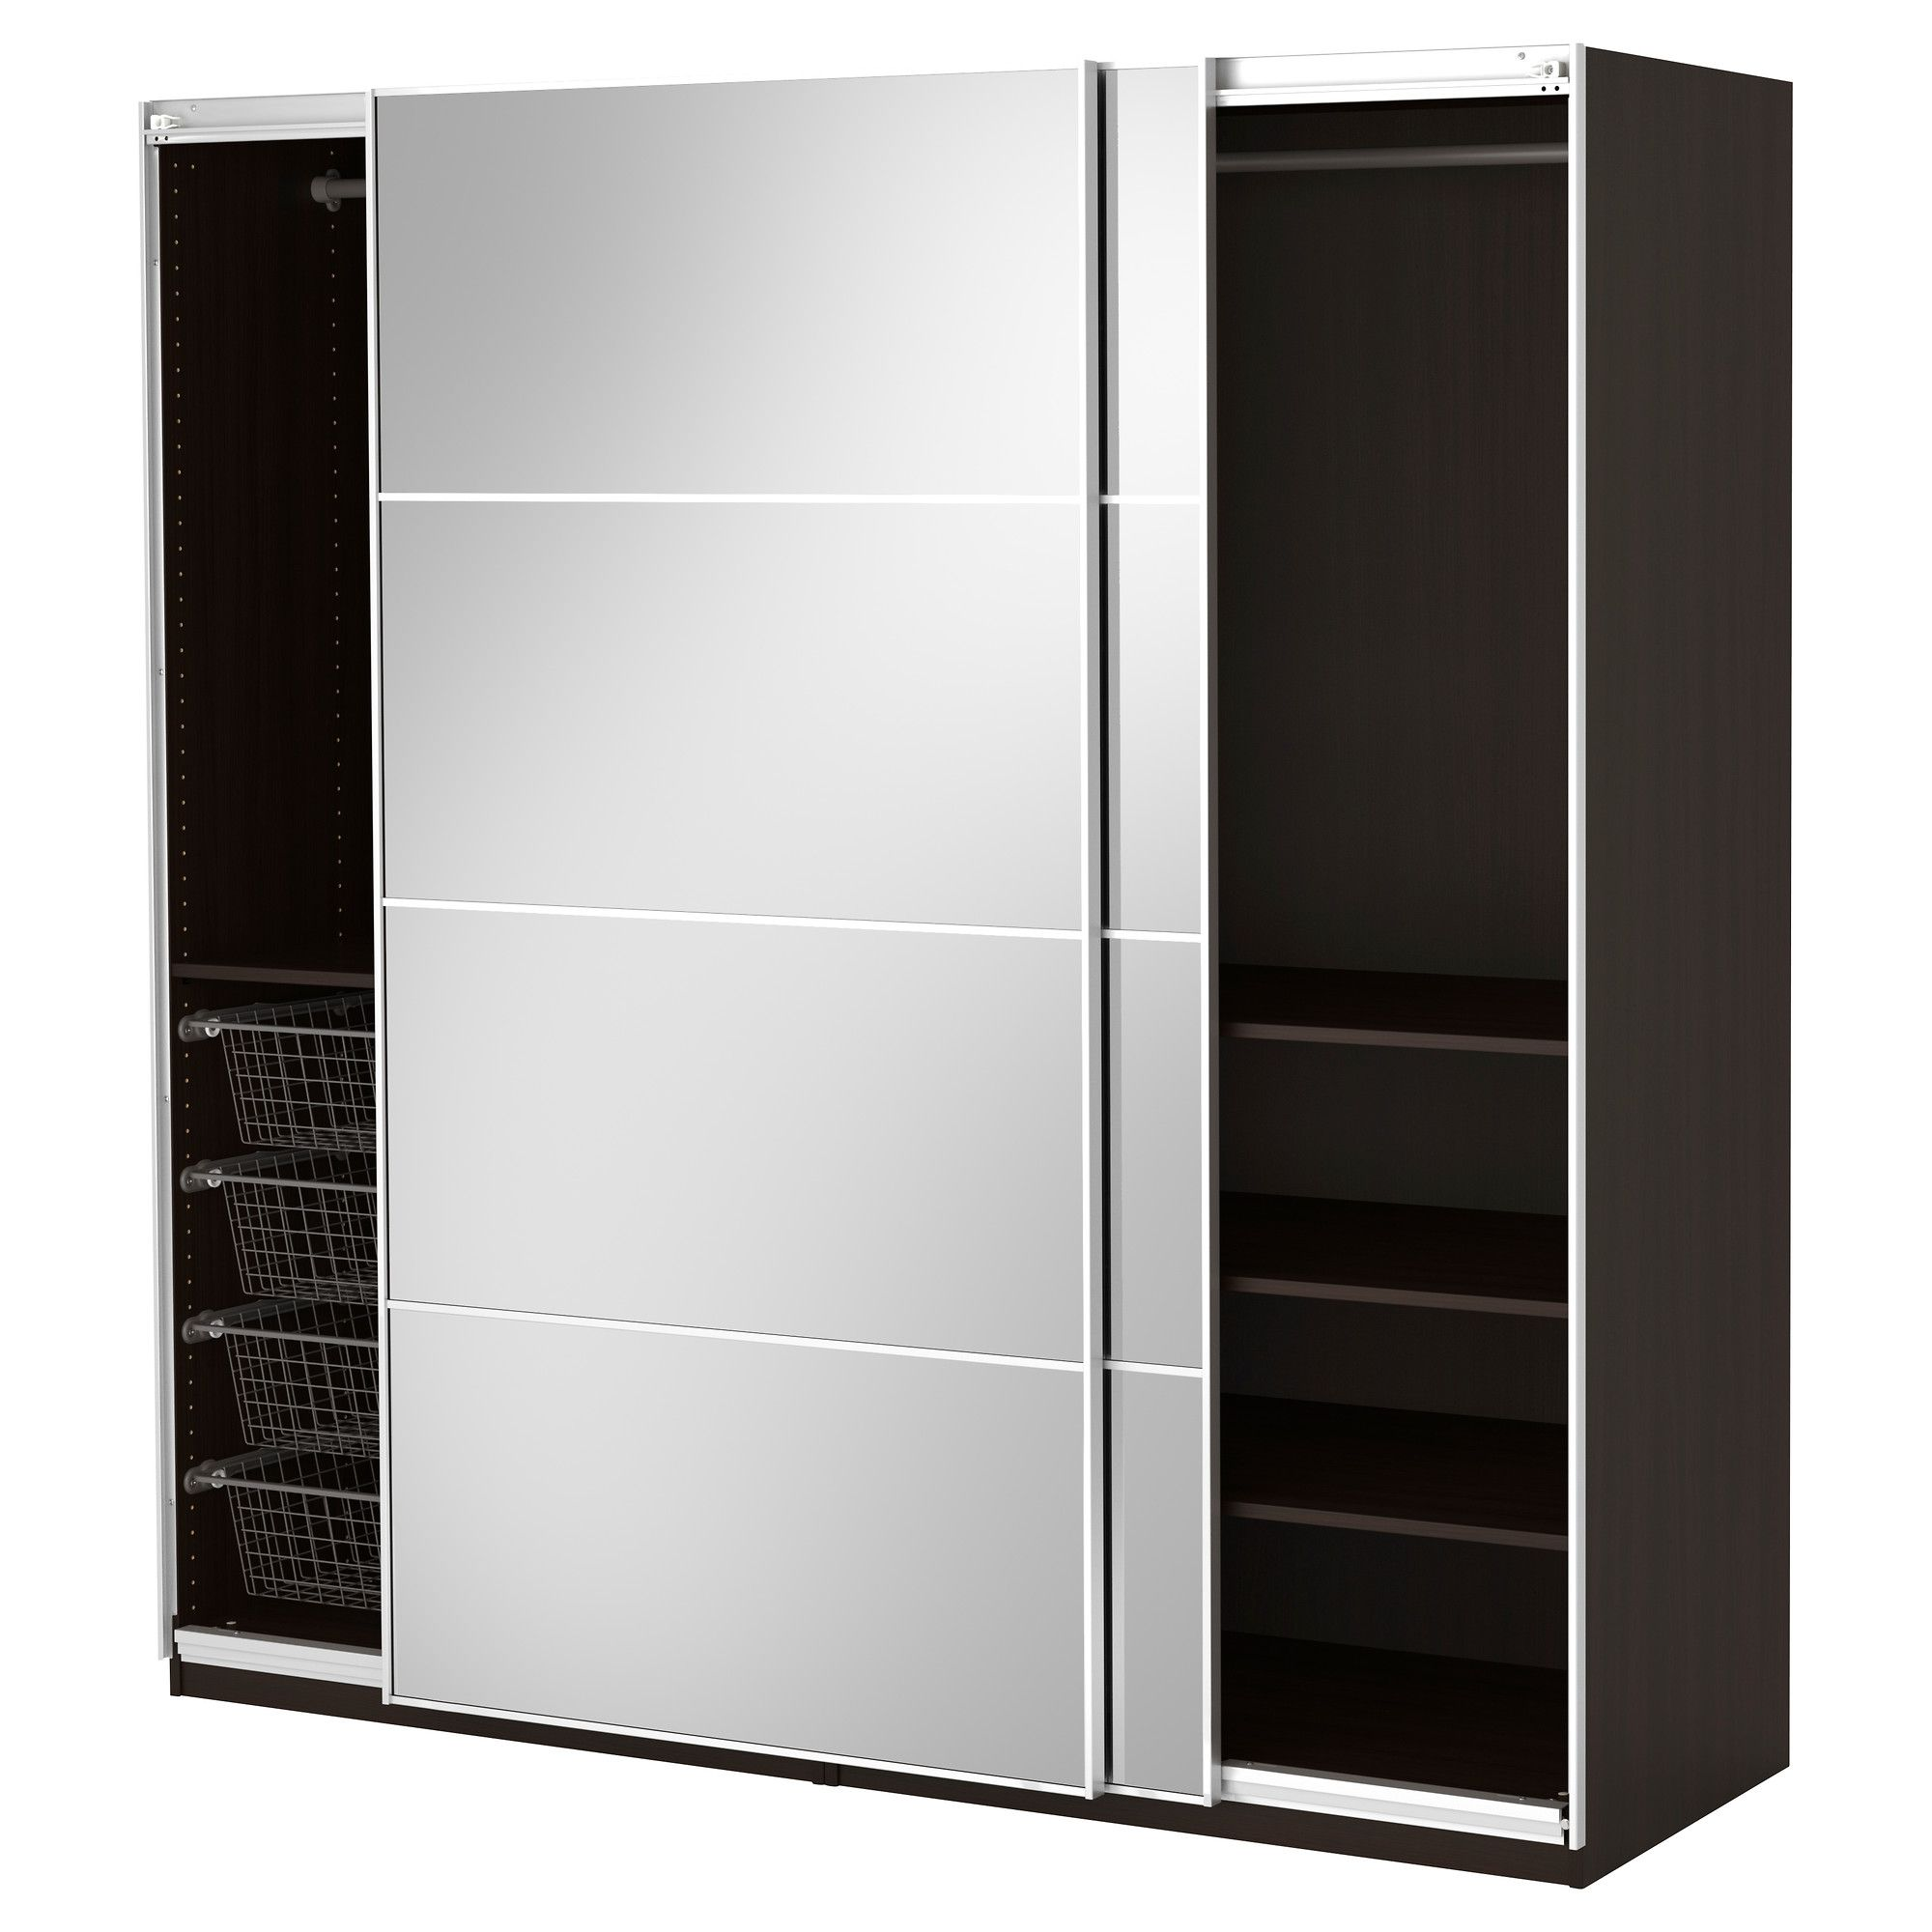 Ikea Hoekkast Pax Build Your Own Stand Alone Wardrobe Google Search Ikea Pax